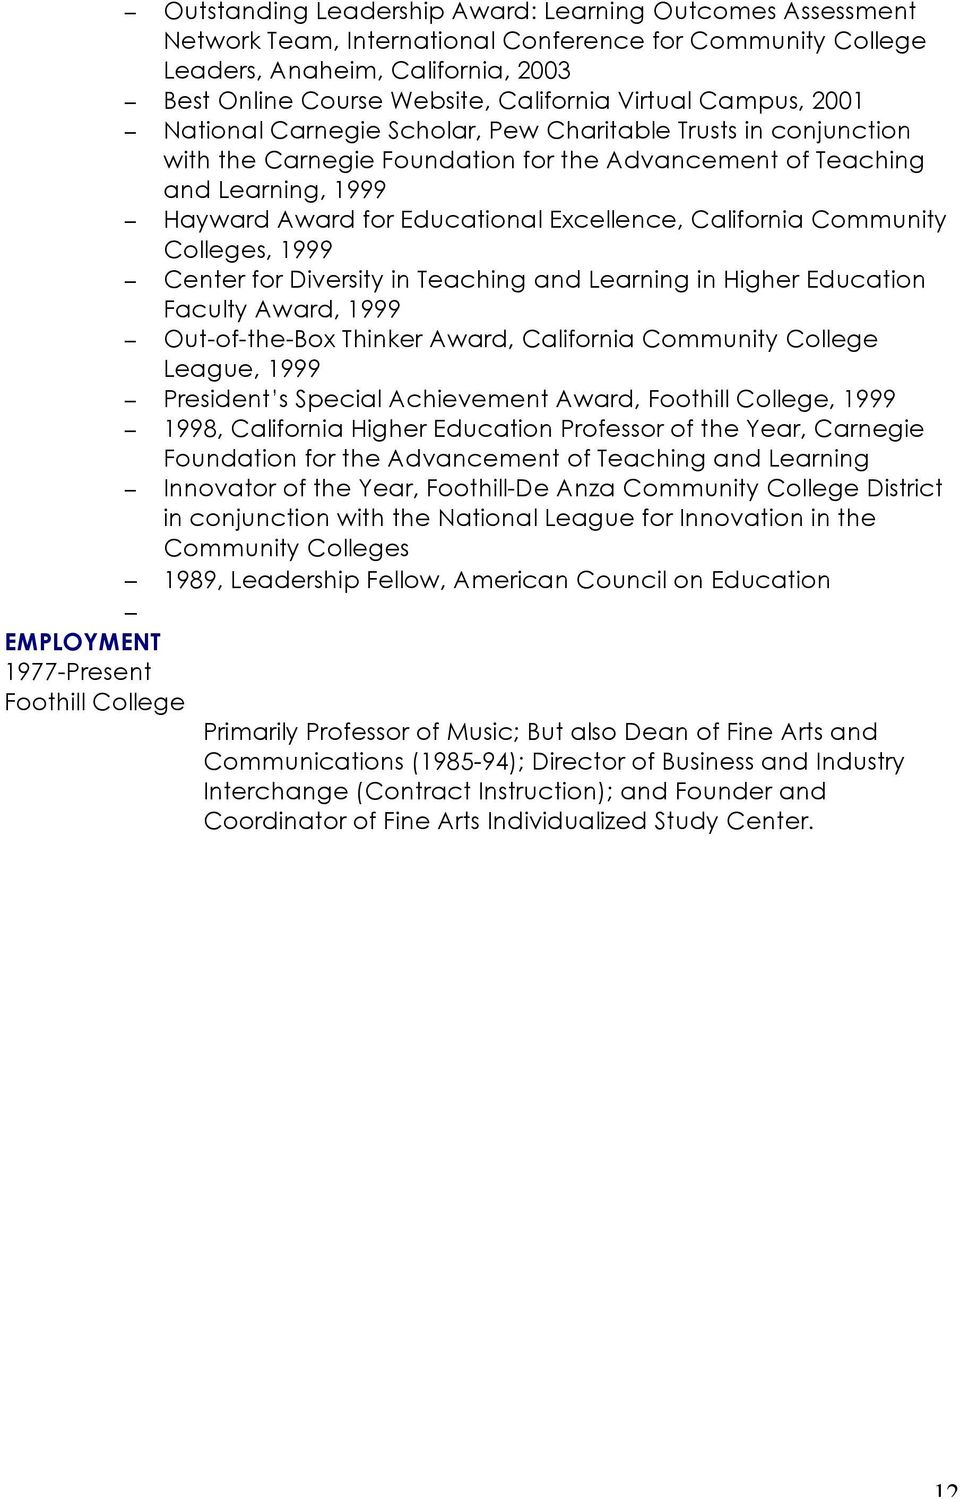 Excellence, California Community Colleges, 1999 Center for Diversity in Teaching and Learning in Higher Education Faculty Award, 1999 Out-of-the-Box Thinker Award, California Community College